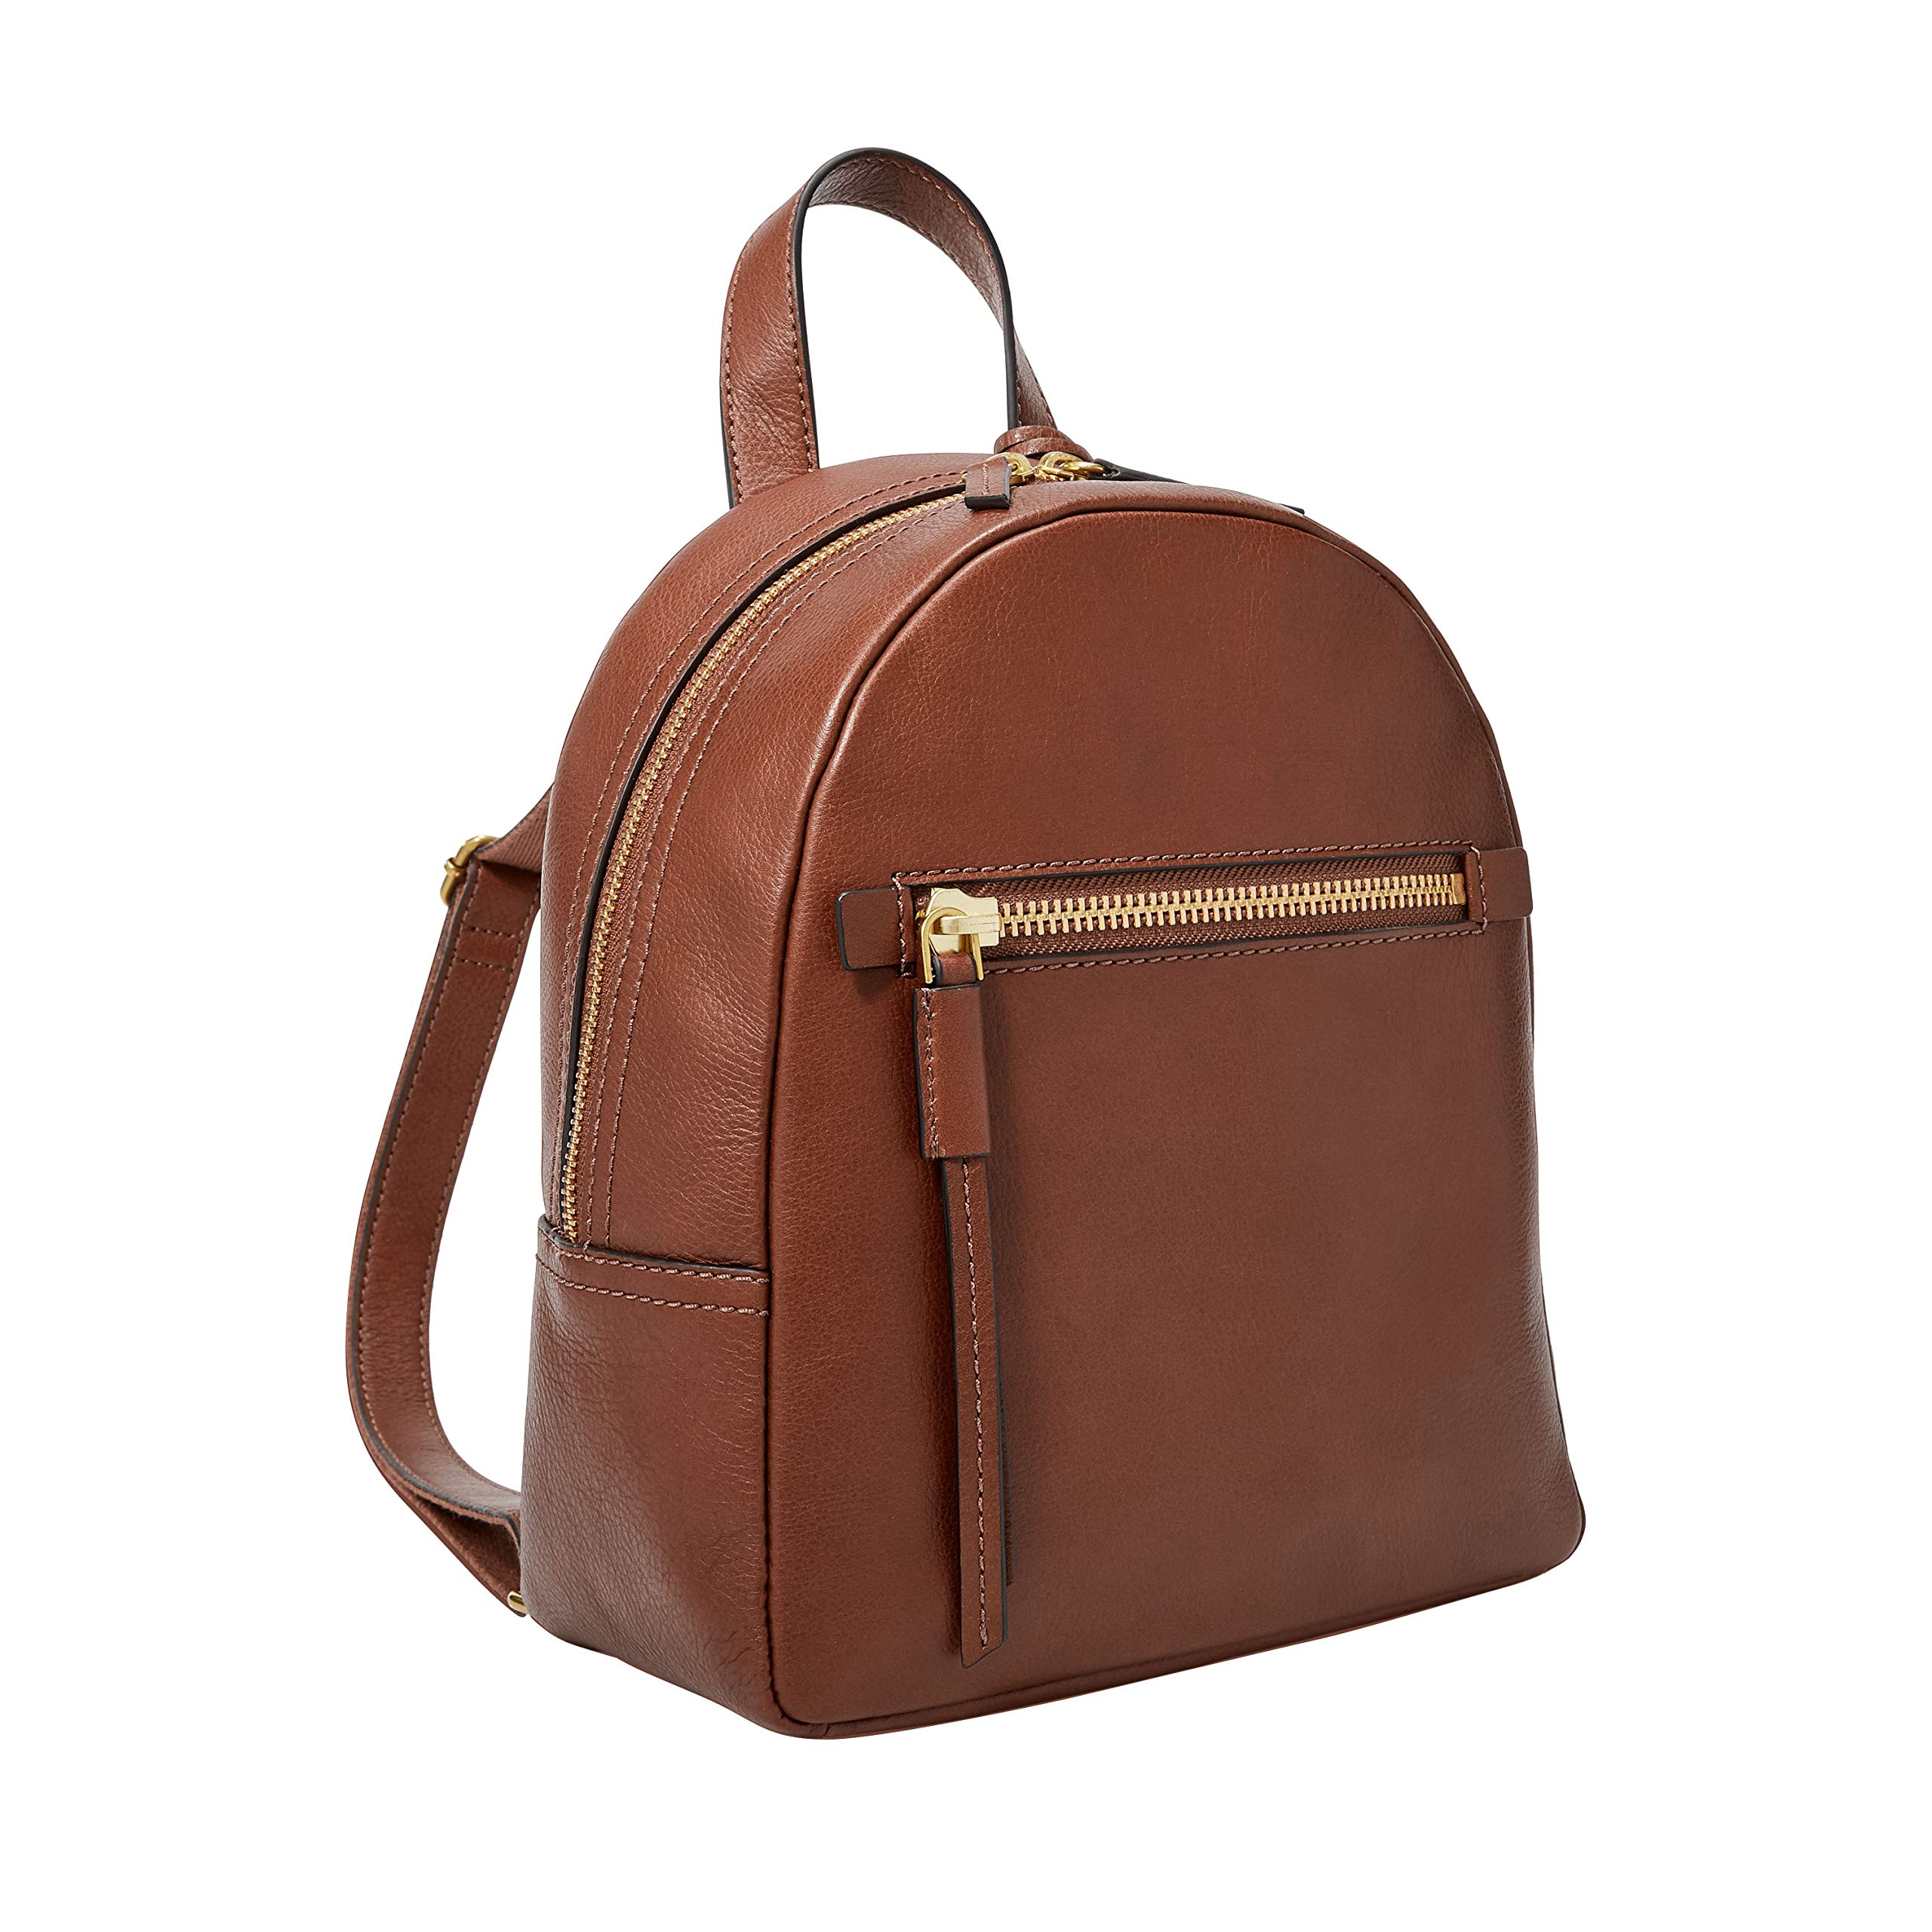 Fossil Megan Mini Backpack Brown, , One Size by Fossil